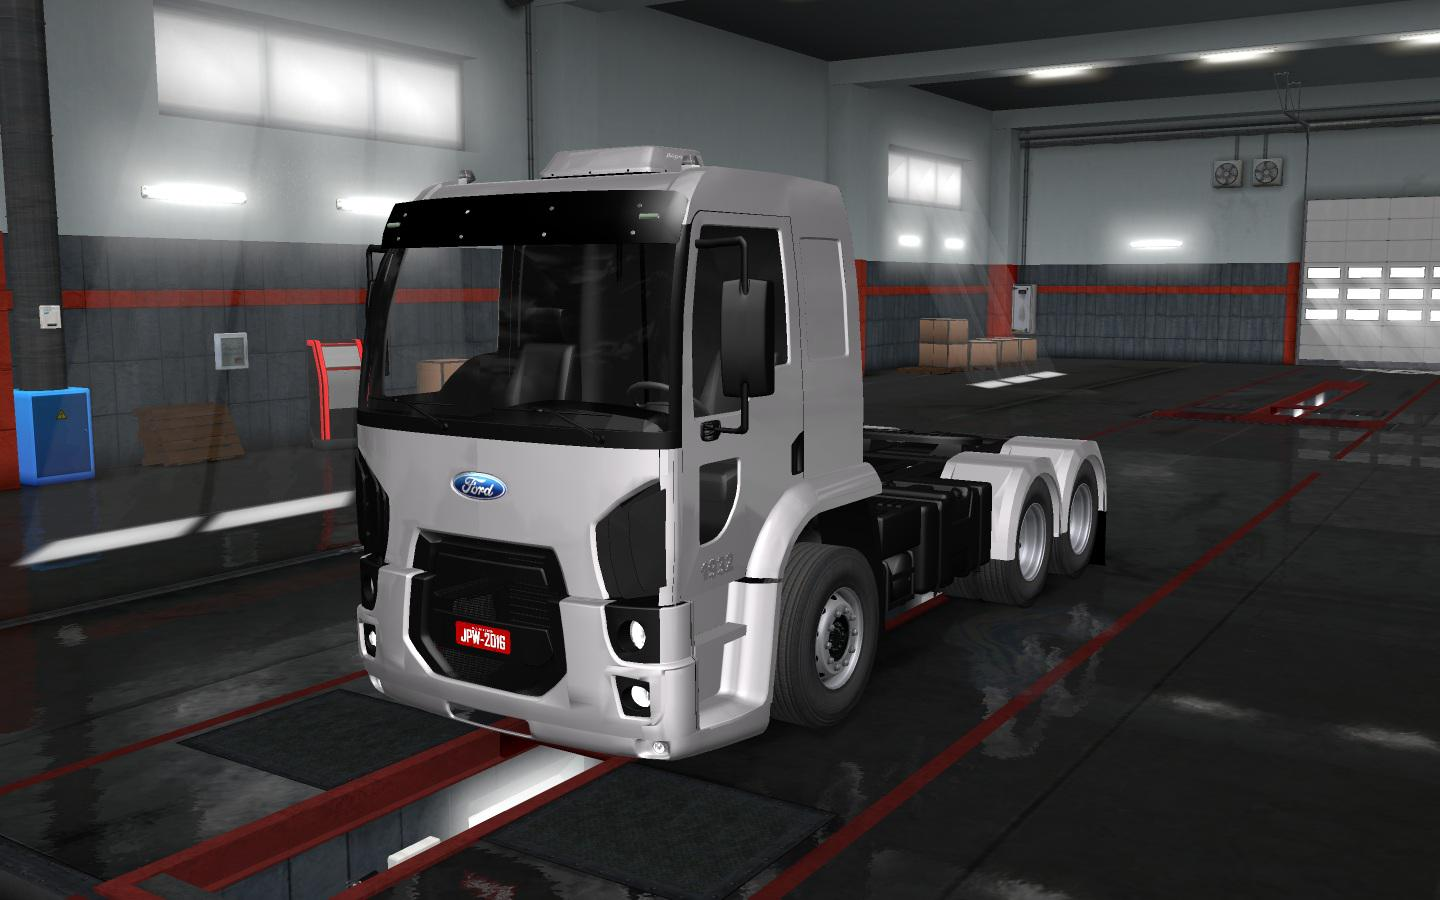 ETS2 - Ford Cargo 1932 Truck (1.35.X)